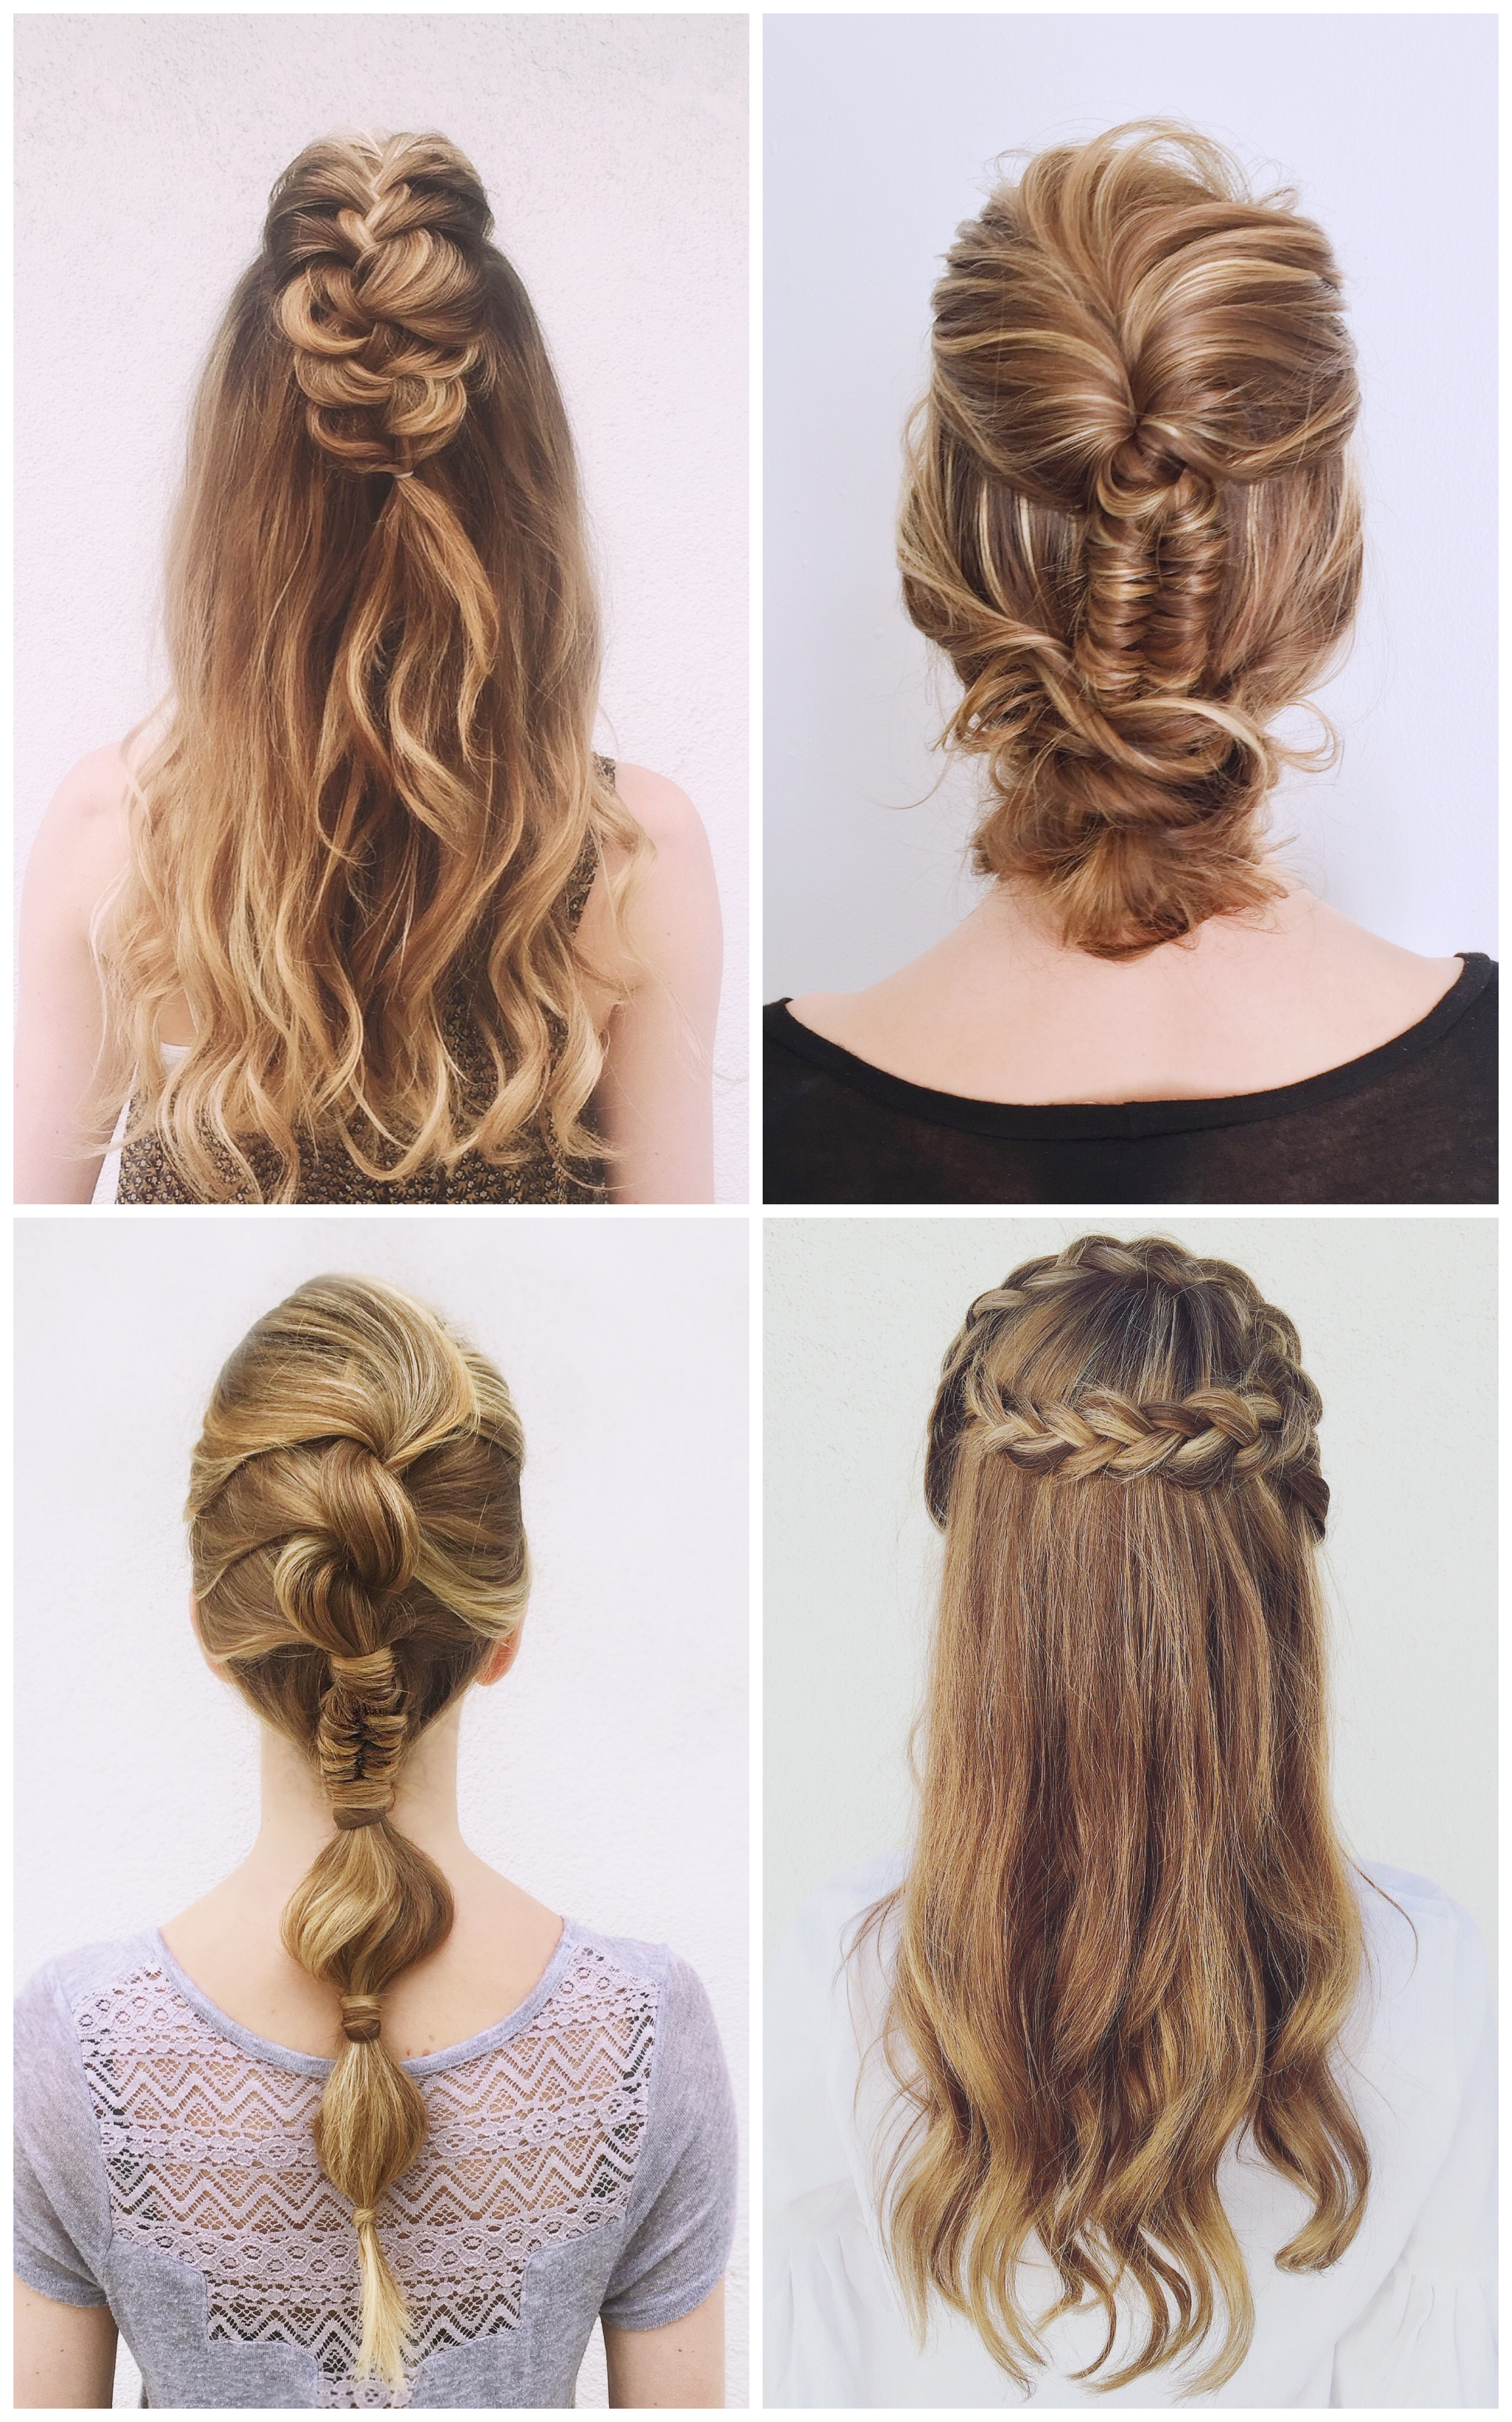 Widely Used Classic Prom Updos With Thick Accent Braid Within 20 Braided Prom Hairstyles For Stylish Girls (View 15 of 20)